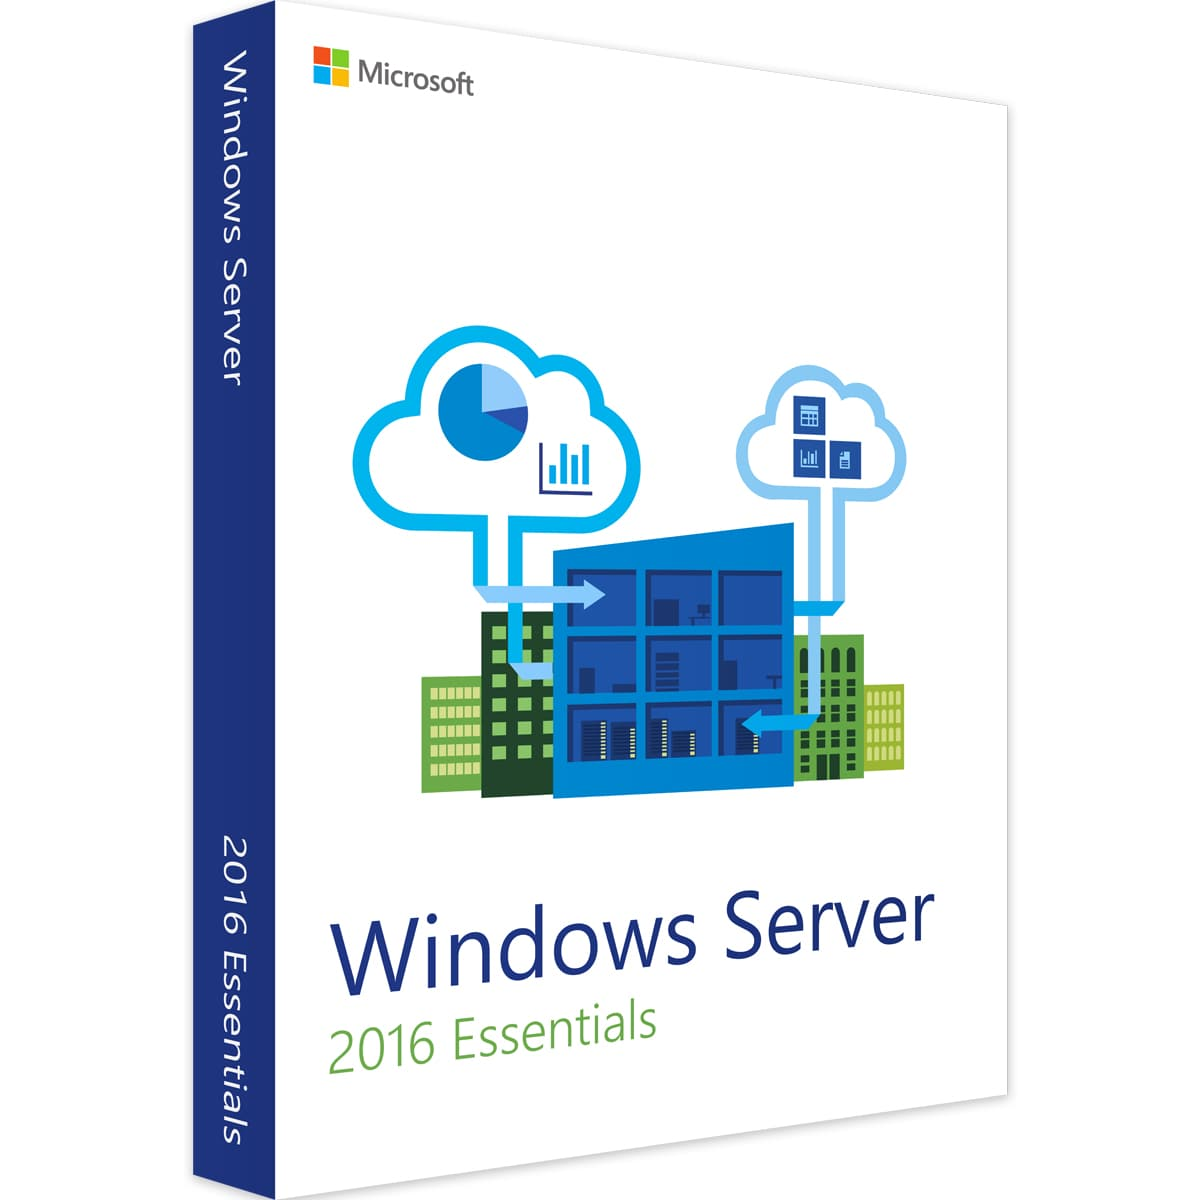 windows-server-2016-essentials-min